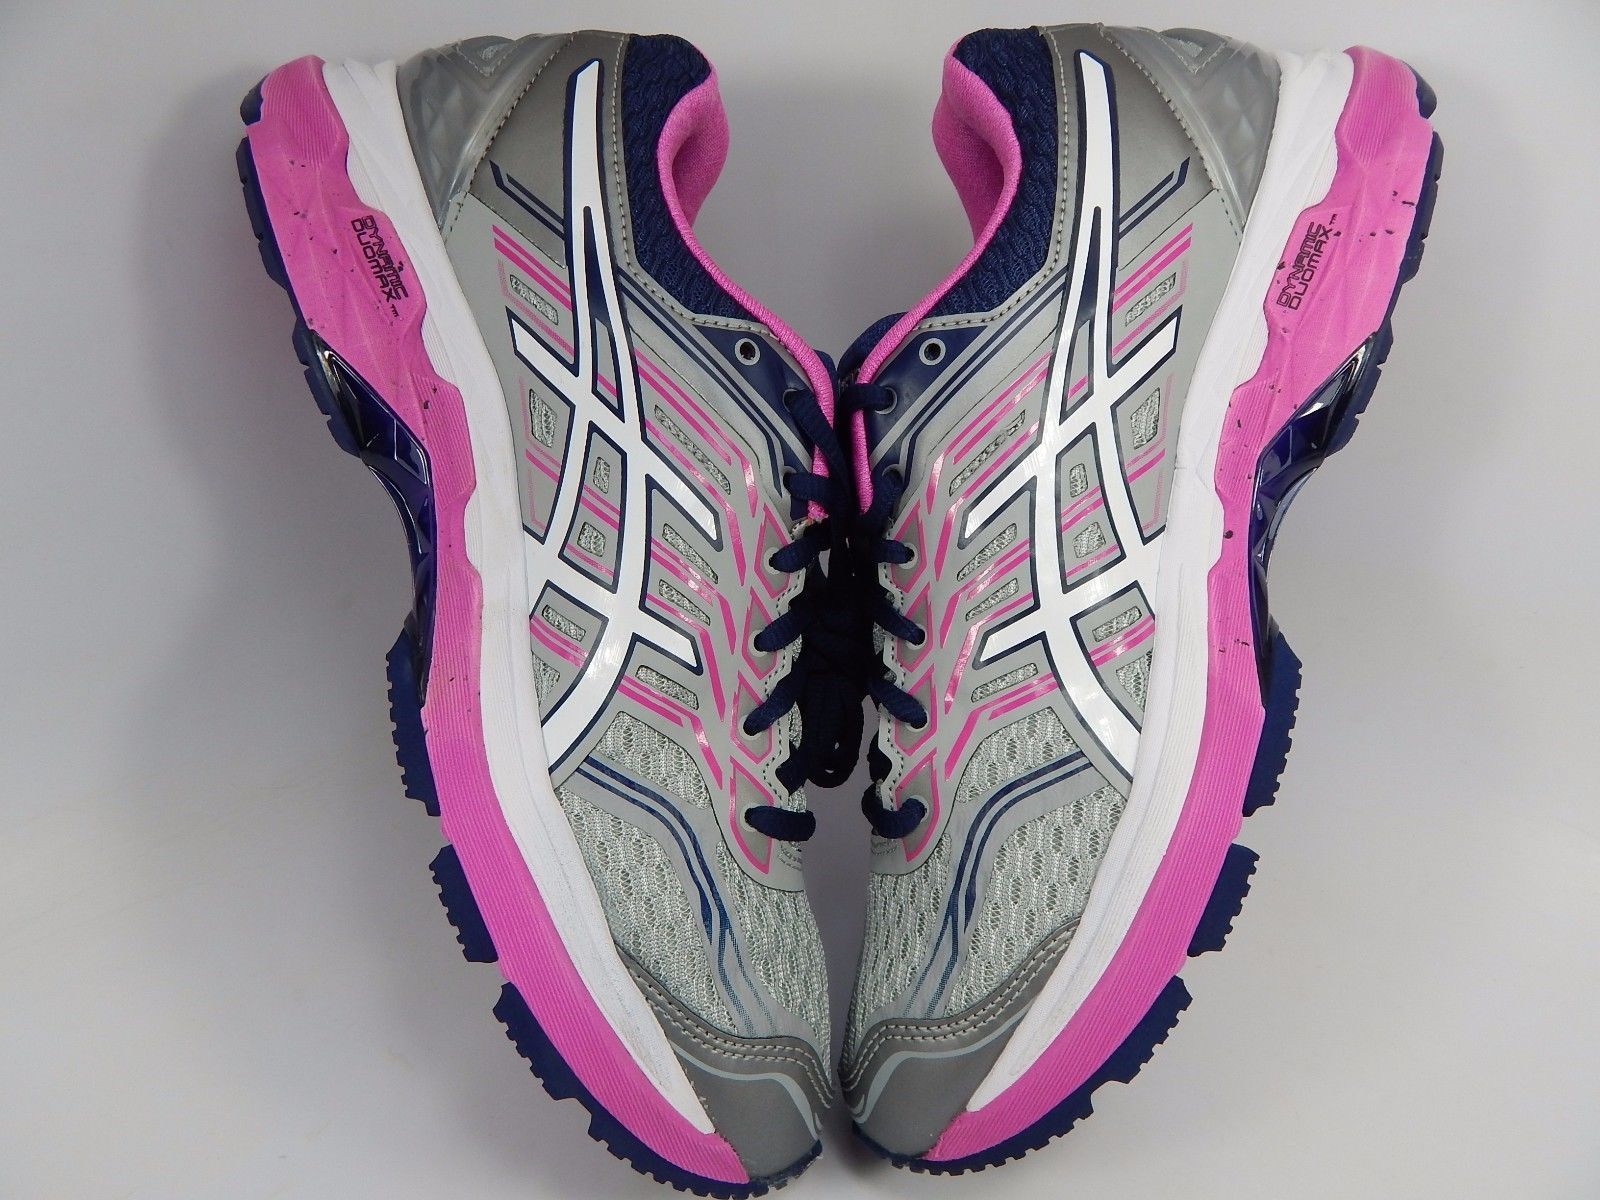 Asics GT 2000 v 5 Women's Running Shoes Sz US 8.5 2A NARROW EU 40 Silver T760N